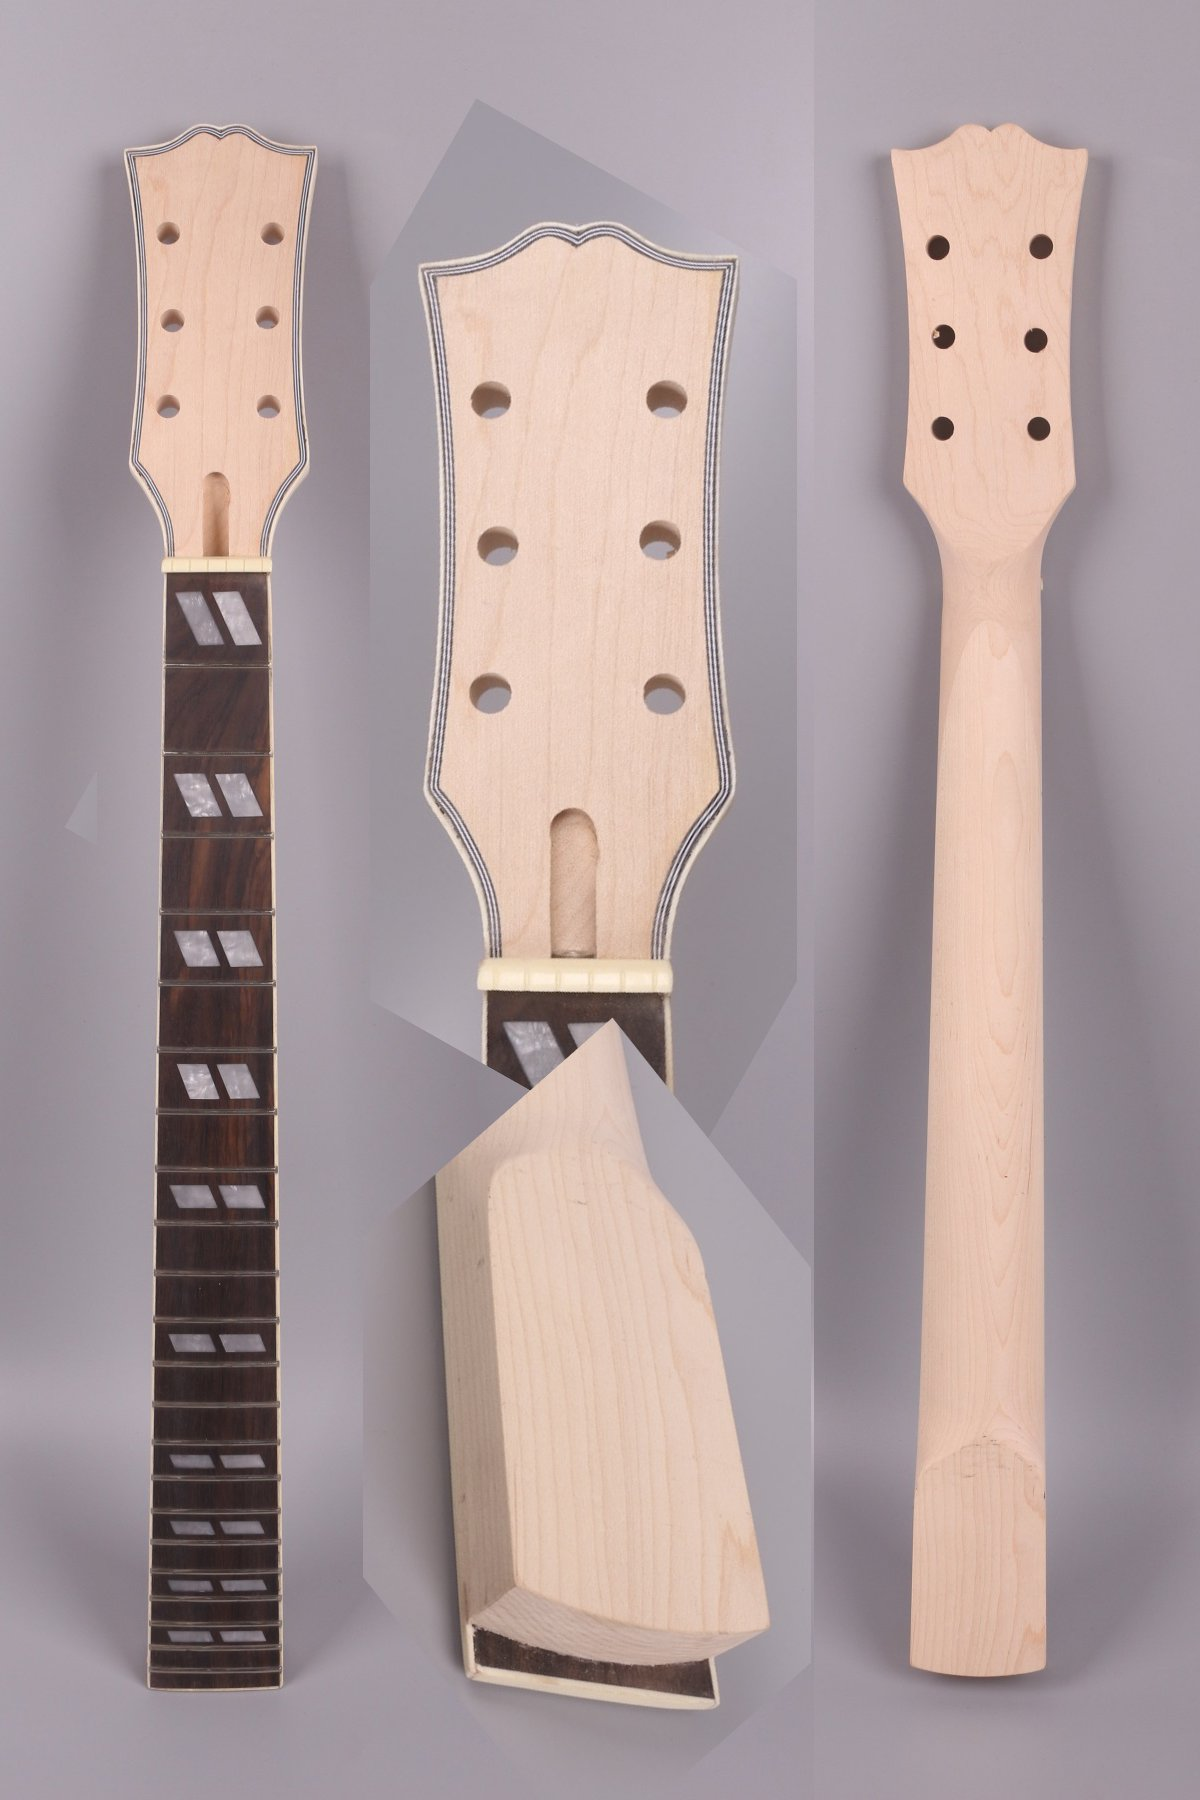 electric guitar neck 22 fret 24.75 inch Maple Rosewood Fretboard diamond Inlay Gibson Les Paul electric guitar replacement Binding Head stock